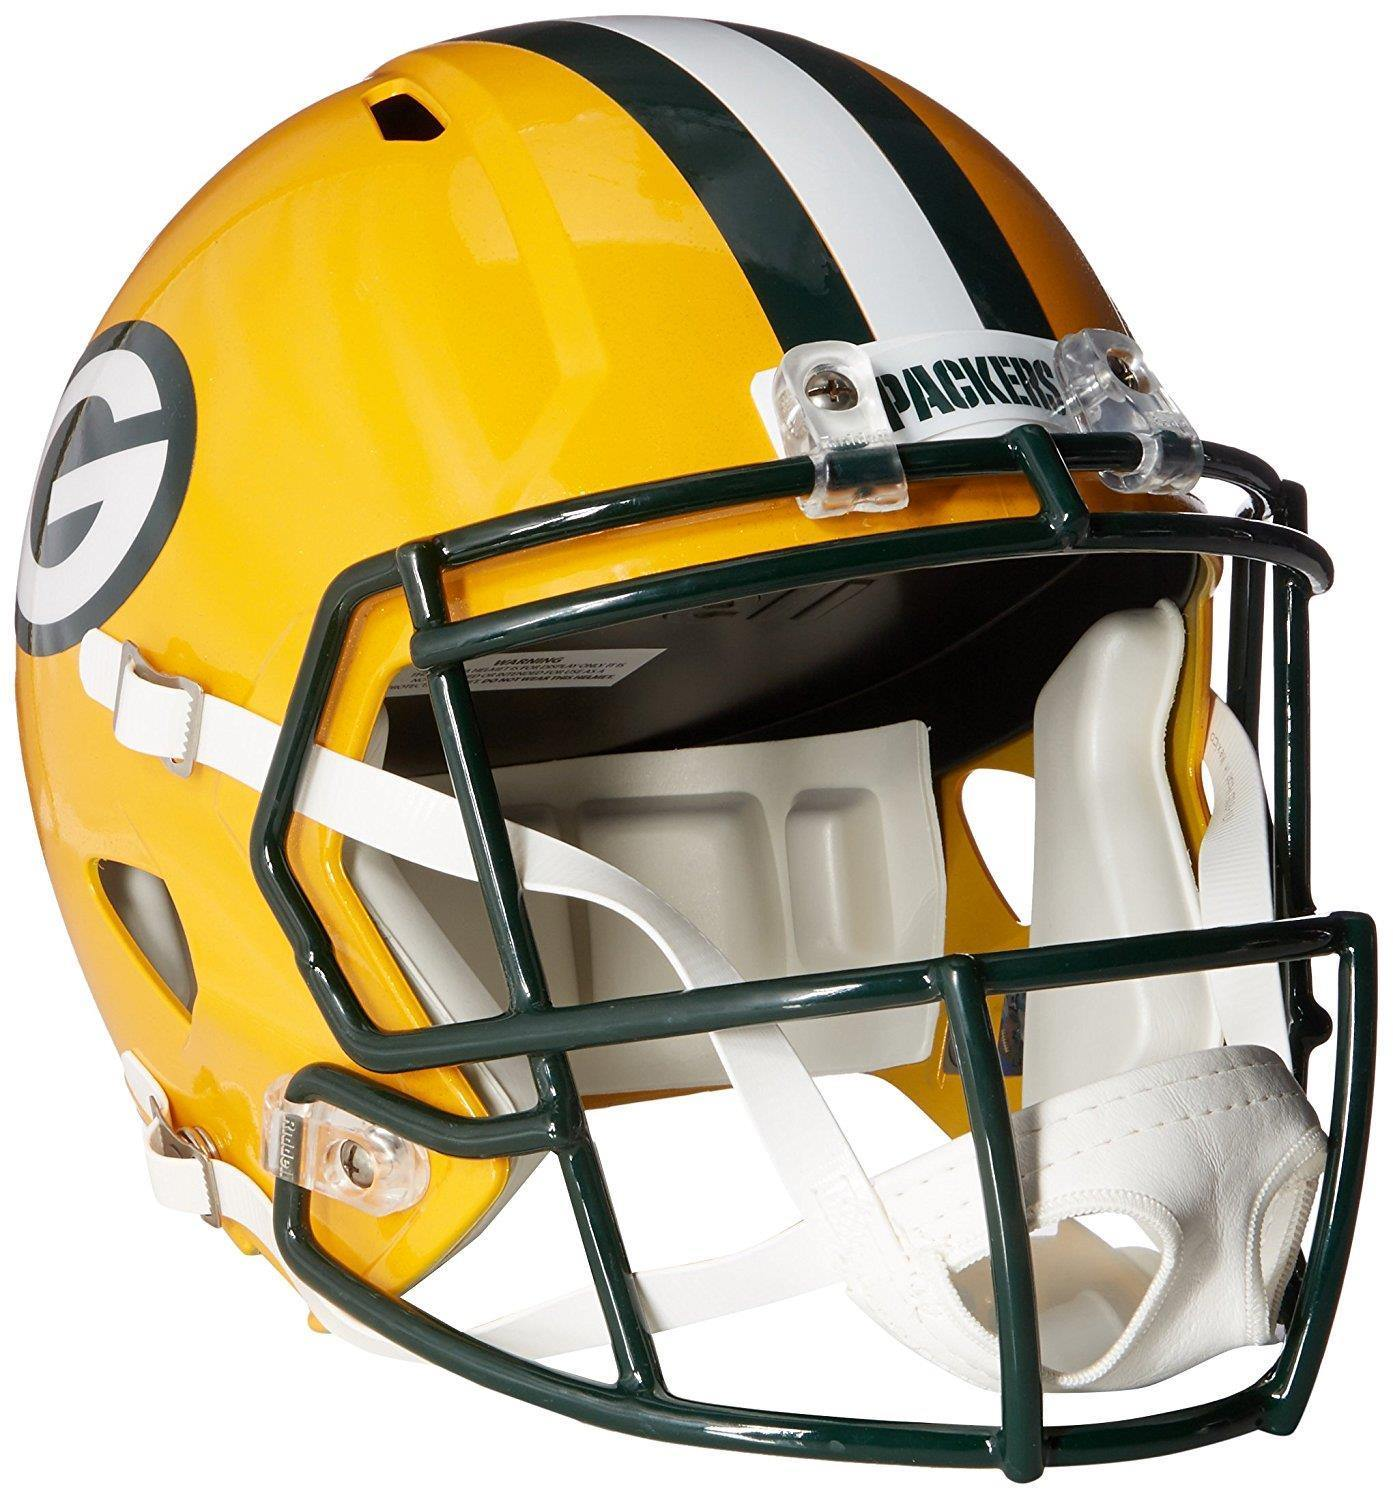 NFL casque réplique, Greenbay Packers. - jacquesmoreausports